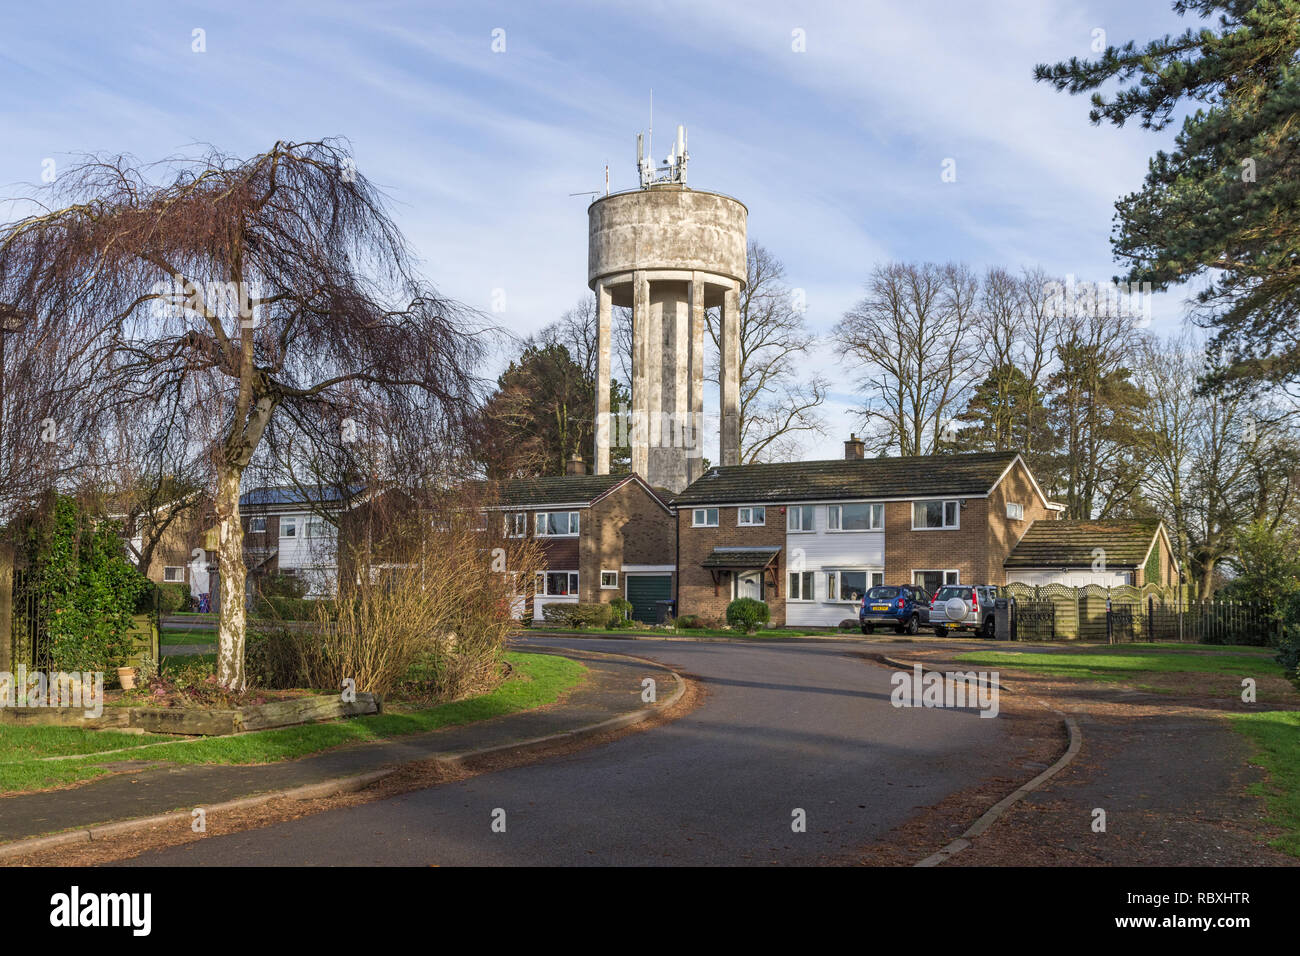 Water Tower in the village of Roade, Northamptonshire, UK Stock Photo